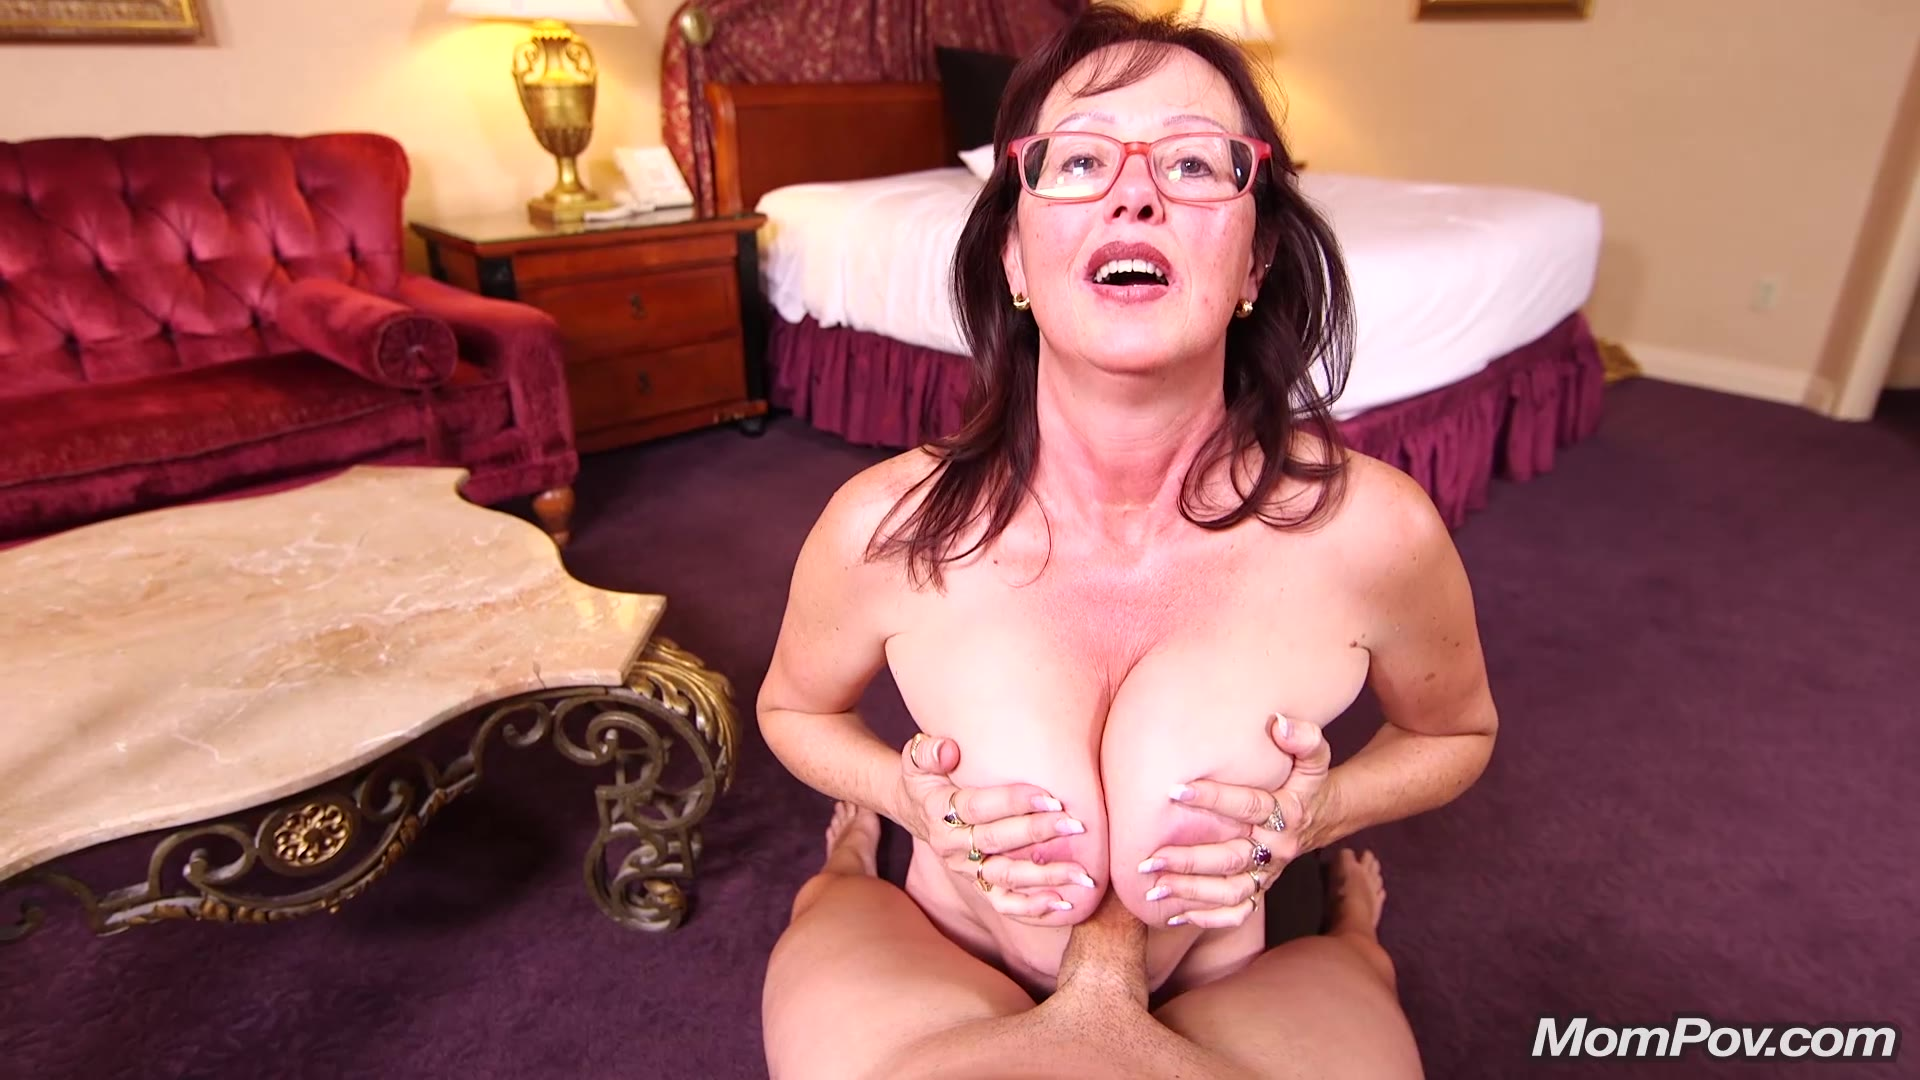 Huge Natural Tits Milf Pov